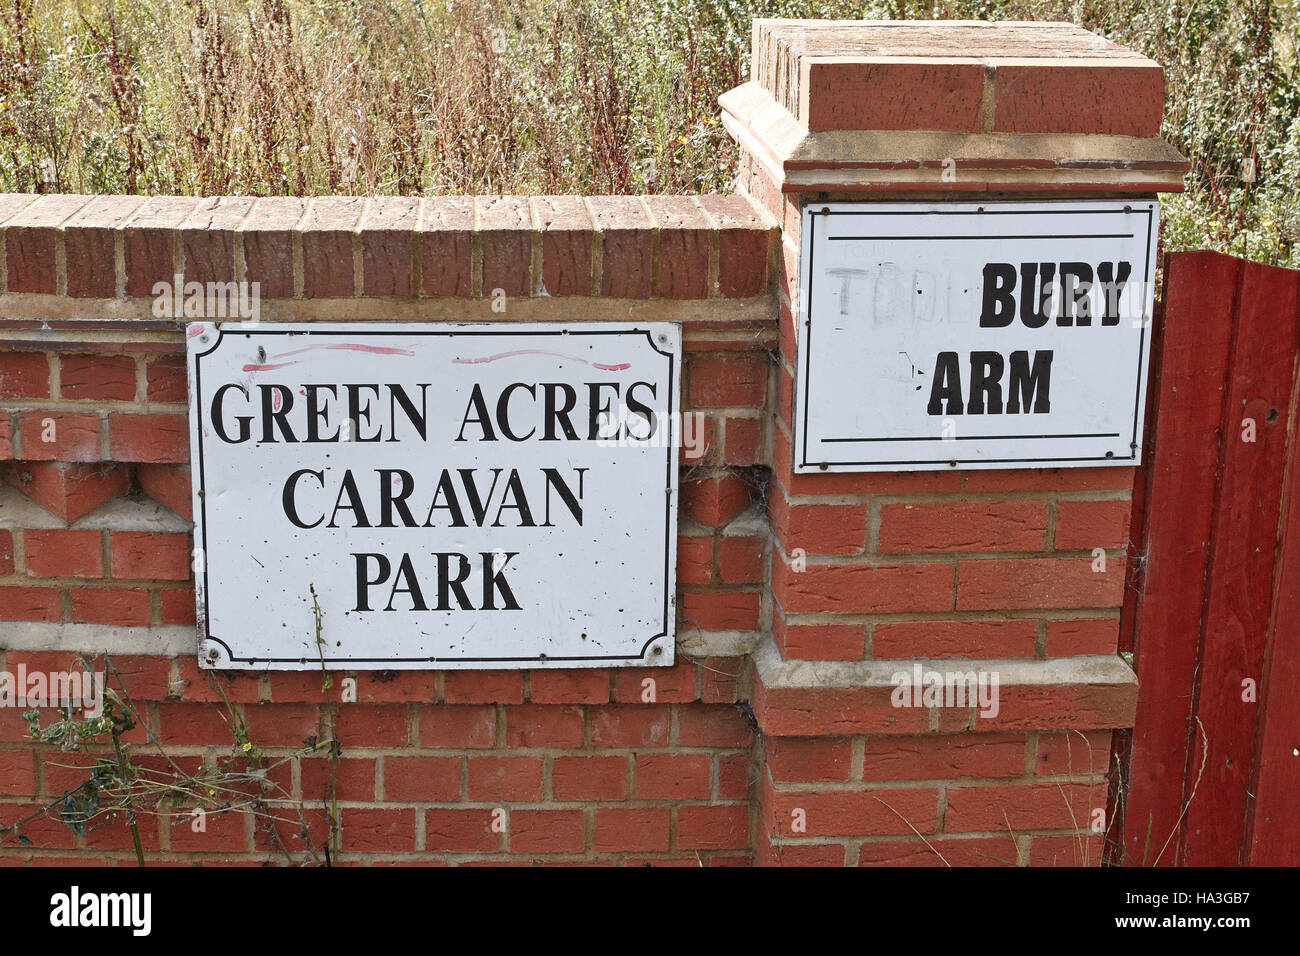 A general view of the Green Acres Caravan Park near Leighton Buzzard where 5 people were arrested on charges of - Stock Image